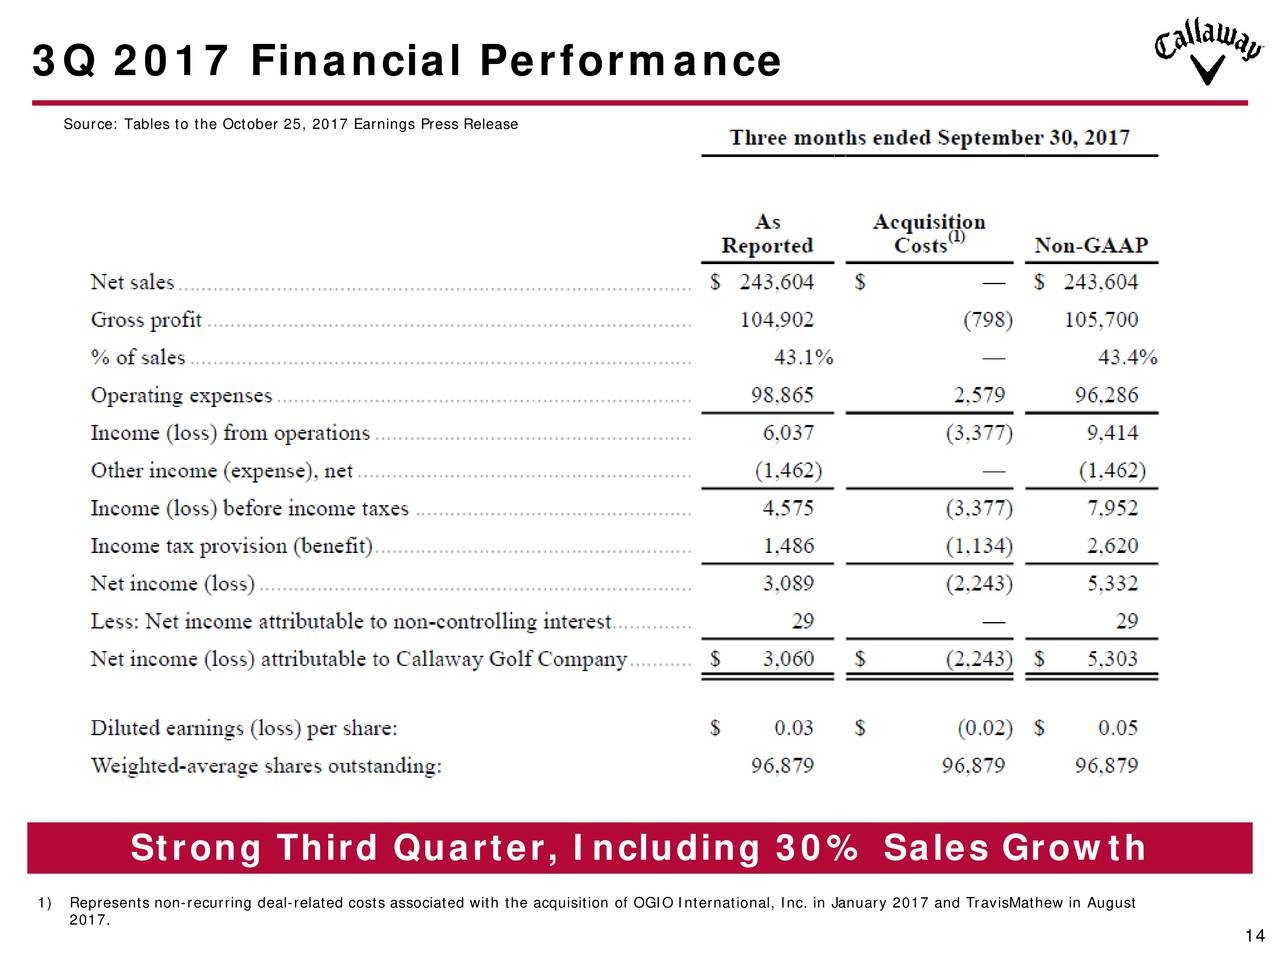 an analysis of the strategic direction of callaway golf company The following are today's upgrades for validea's small-cap growth investor model based on the published strategy  callaway golf company  analysis and model.